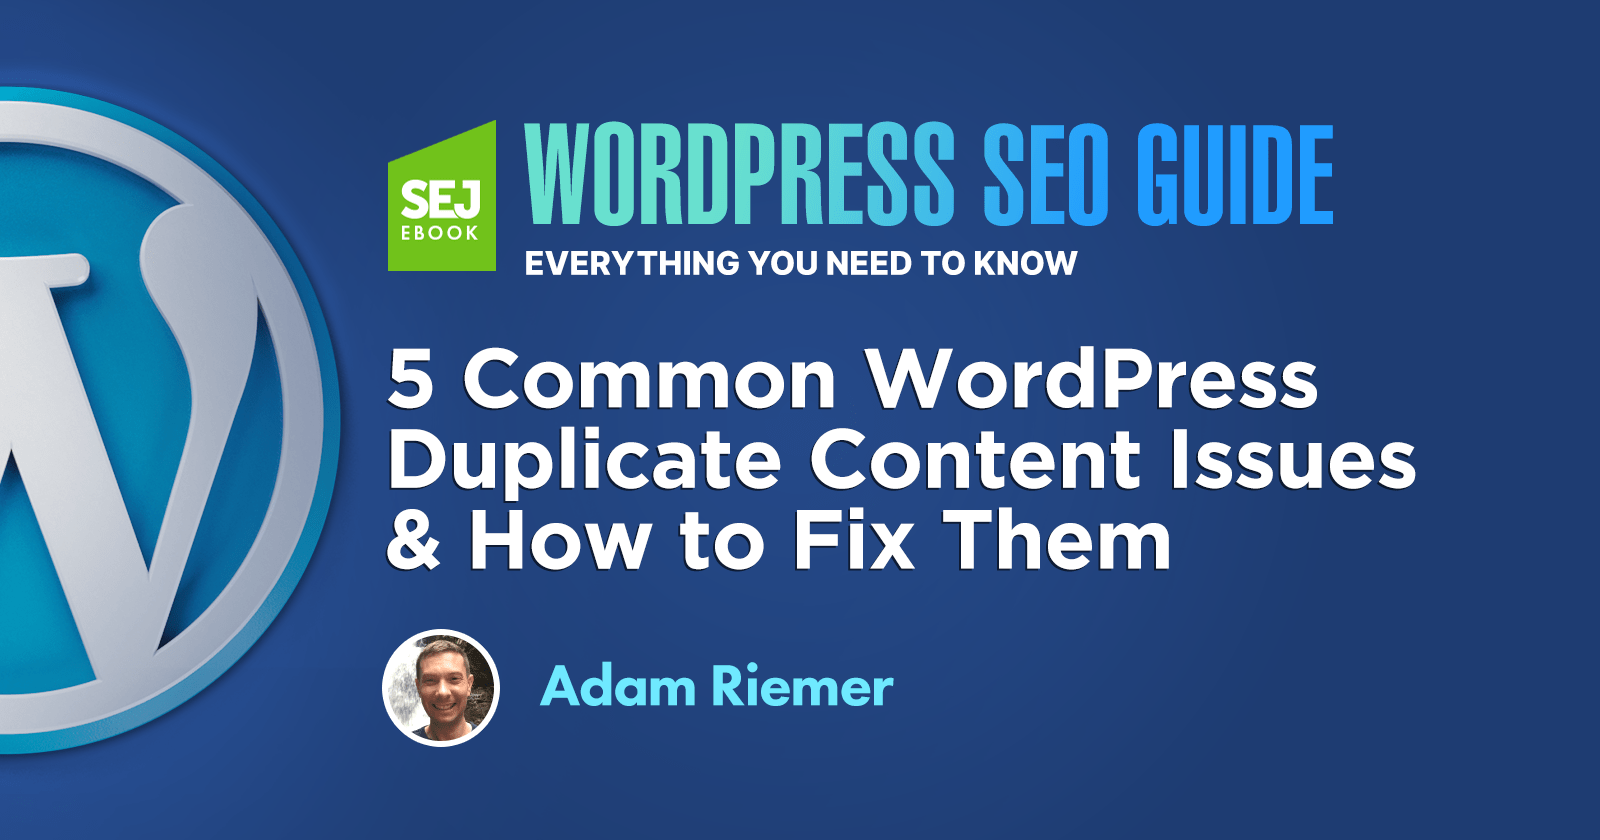 Previous Chapter5 Common WordPress Duplicate Content Issues & How to Fix Them - Search Engine Journal